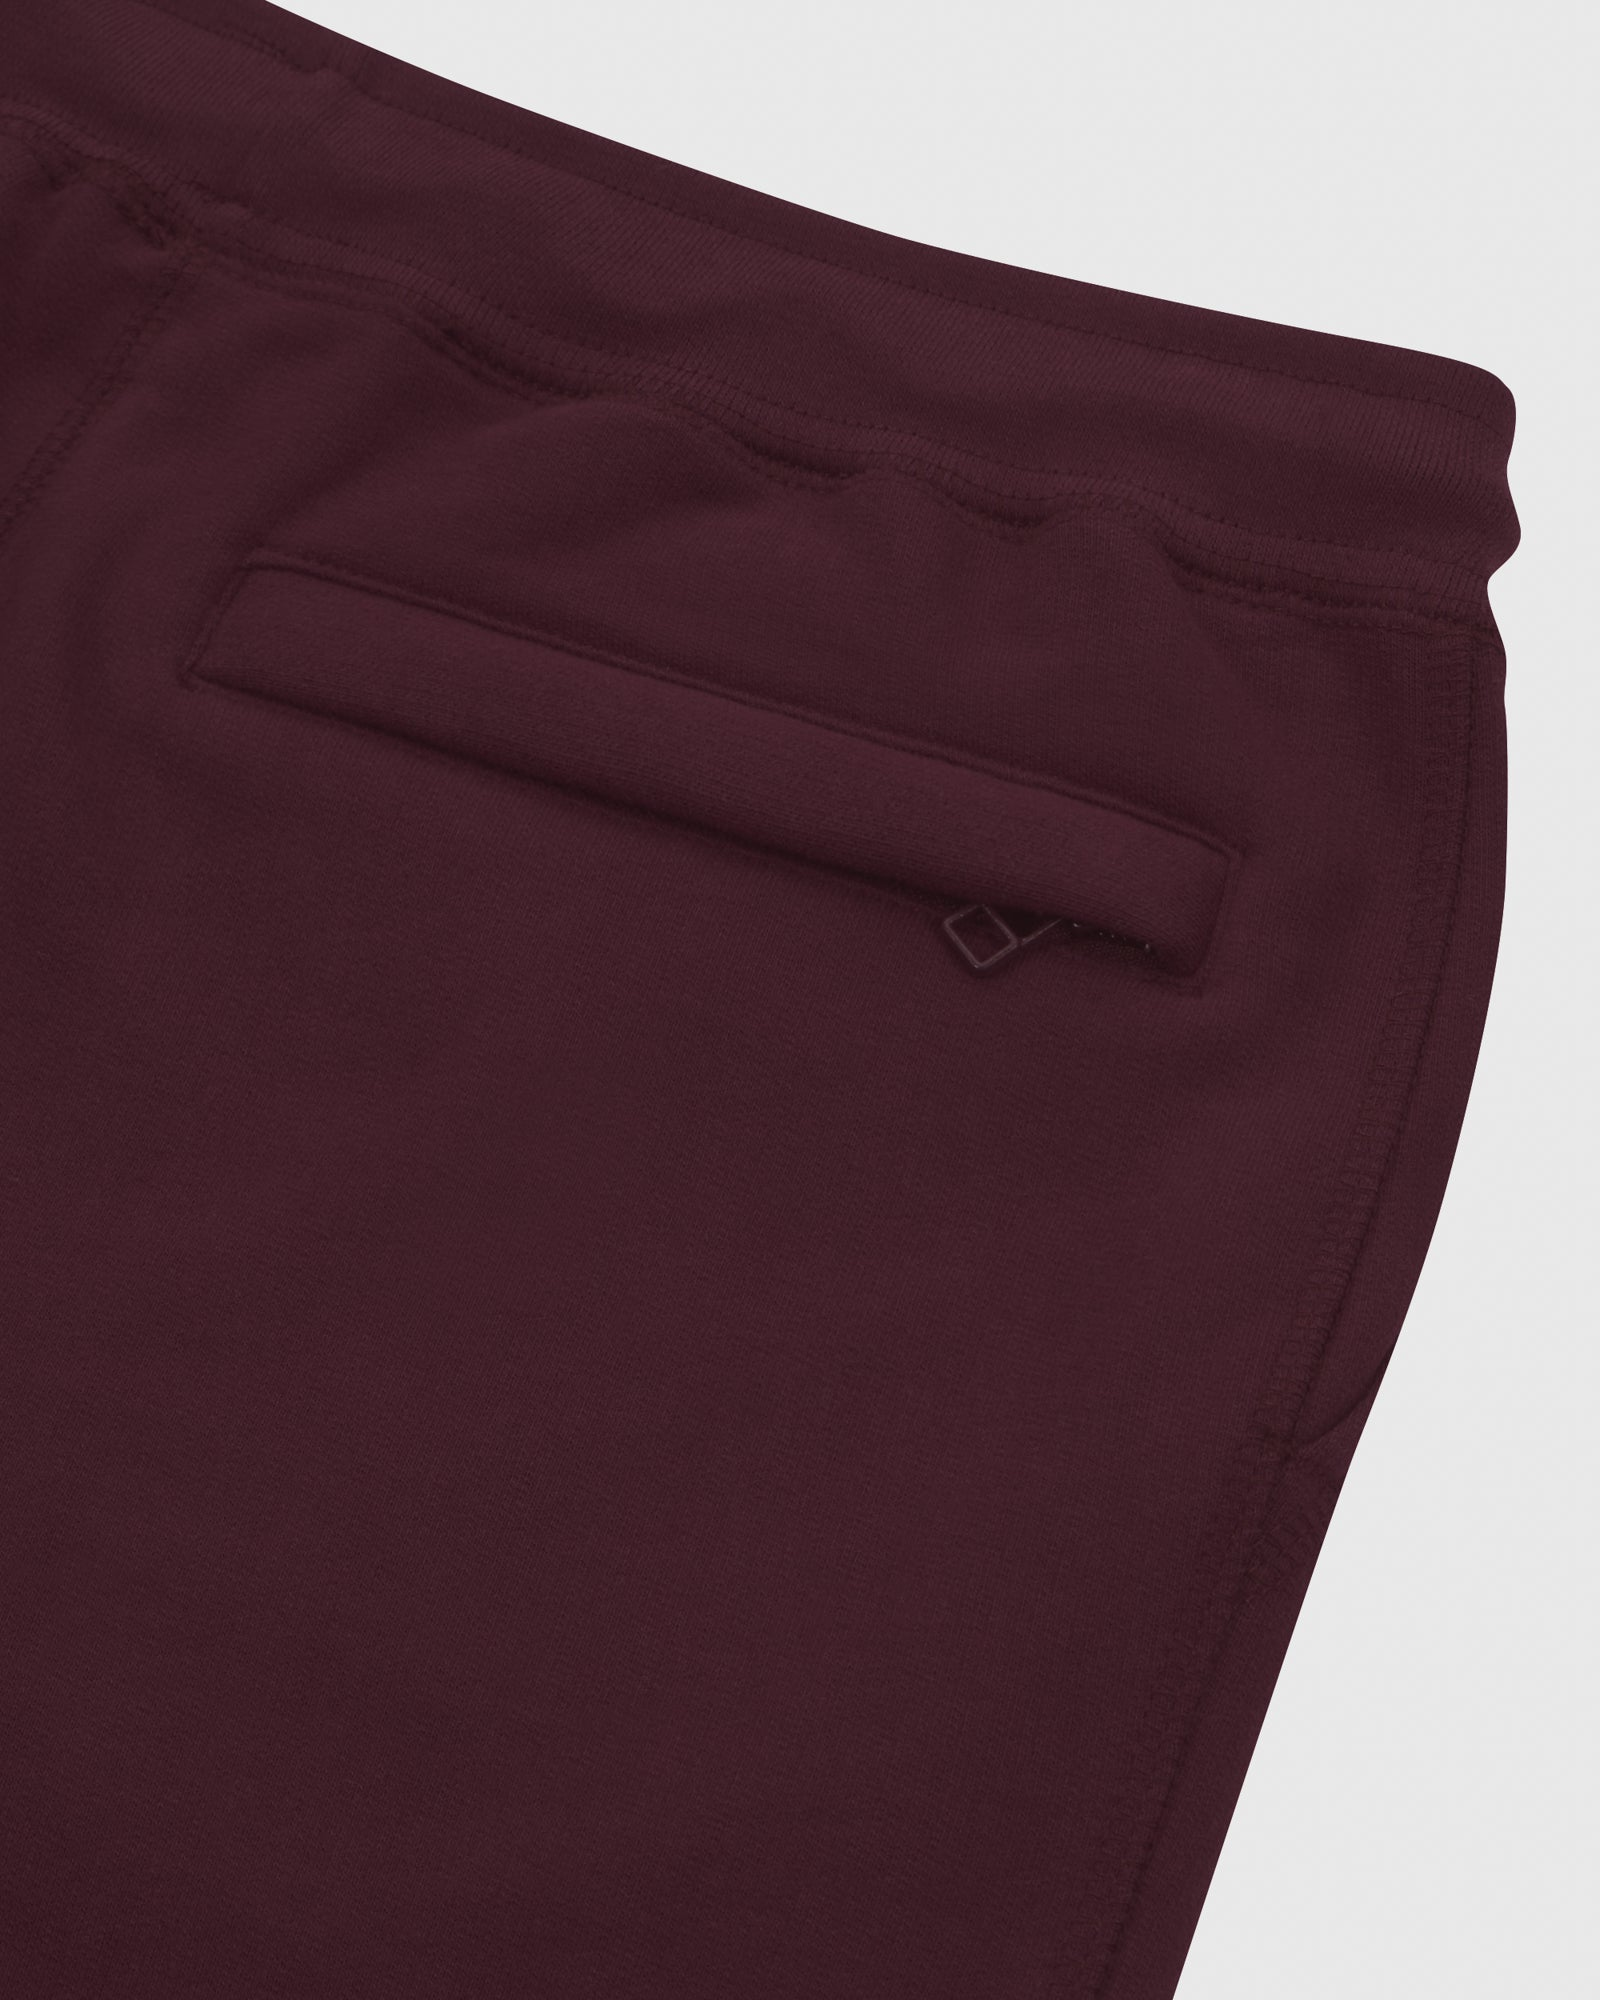 MID-WEIGHT FRENCH TERRY SWEATPANT - BURGUNDY